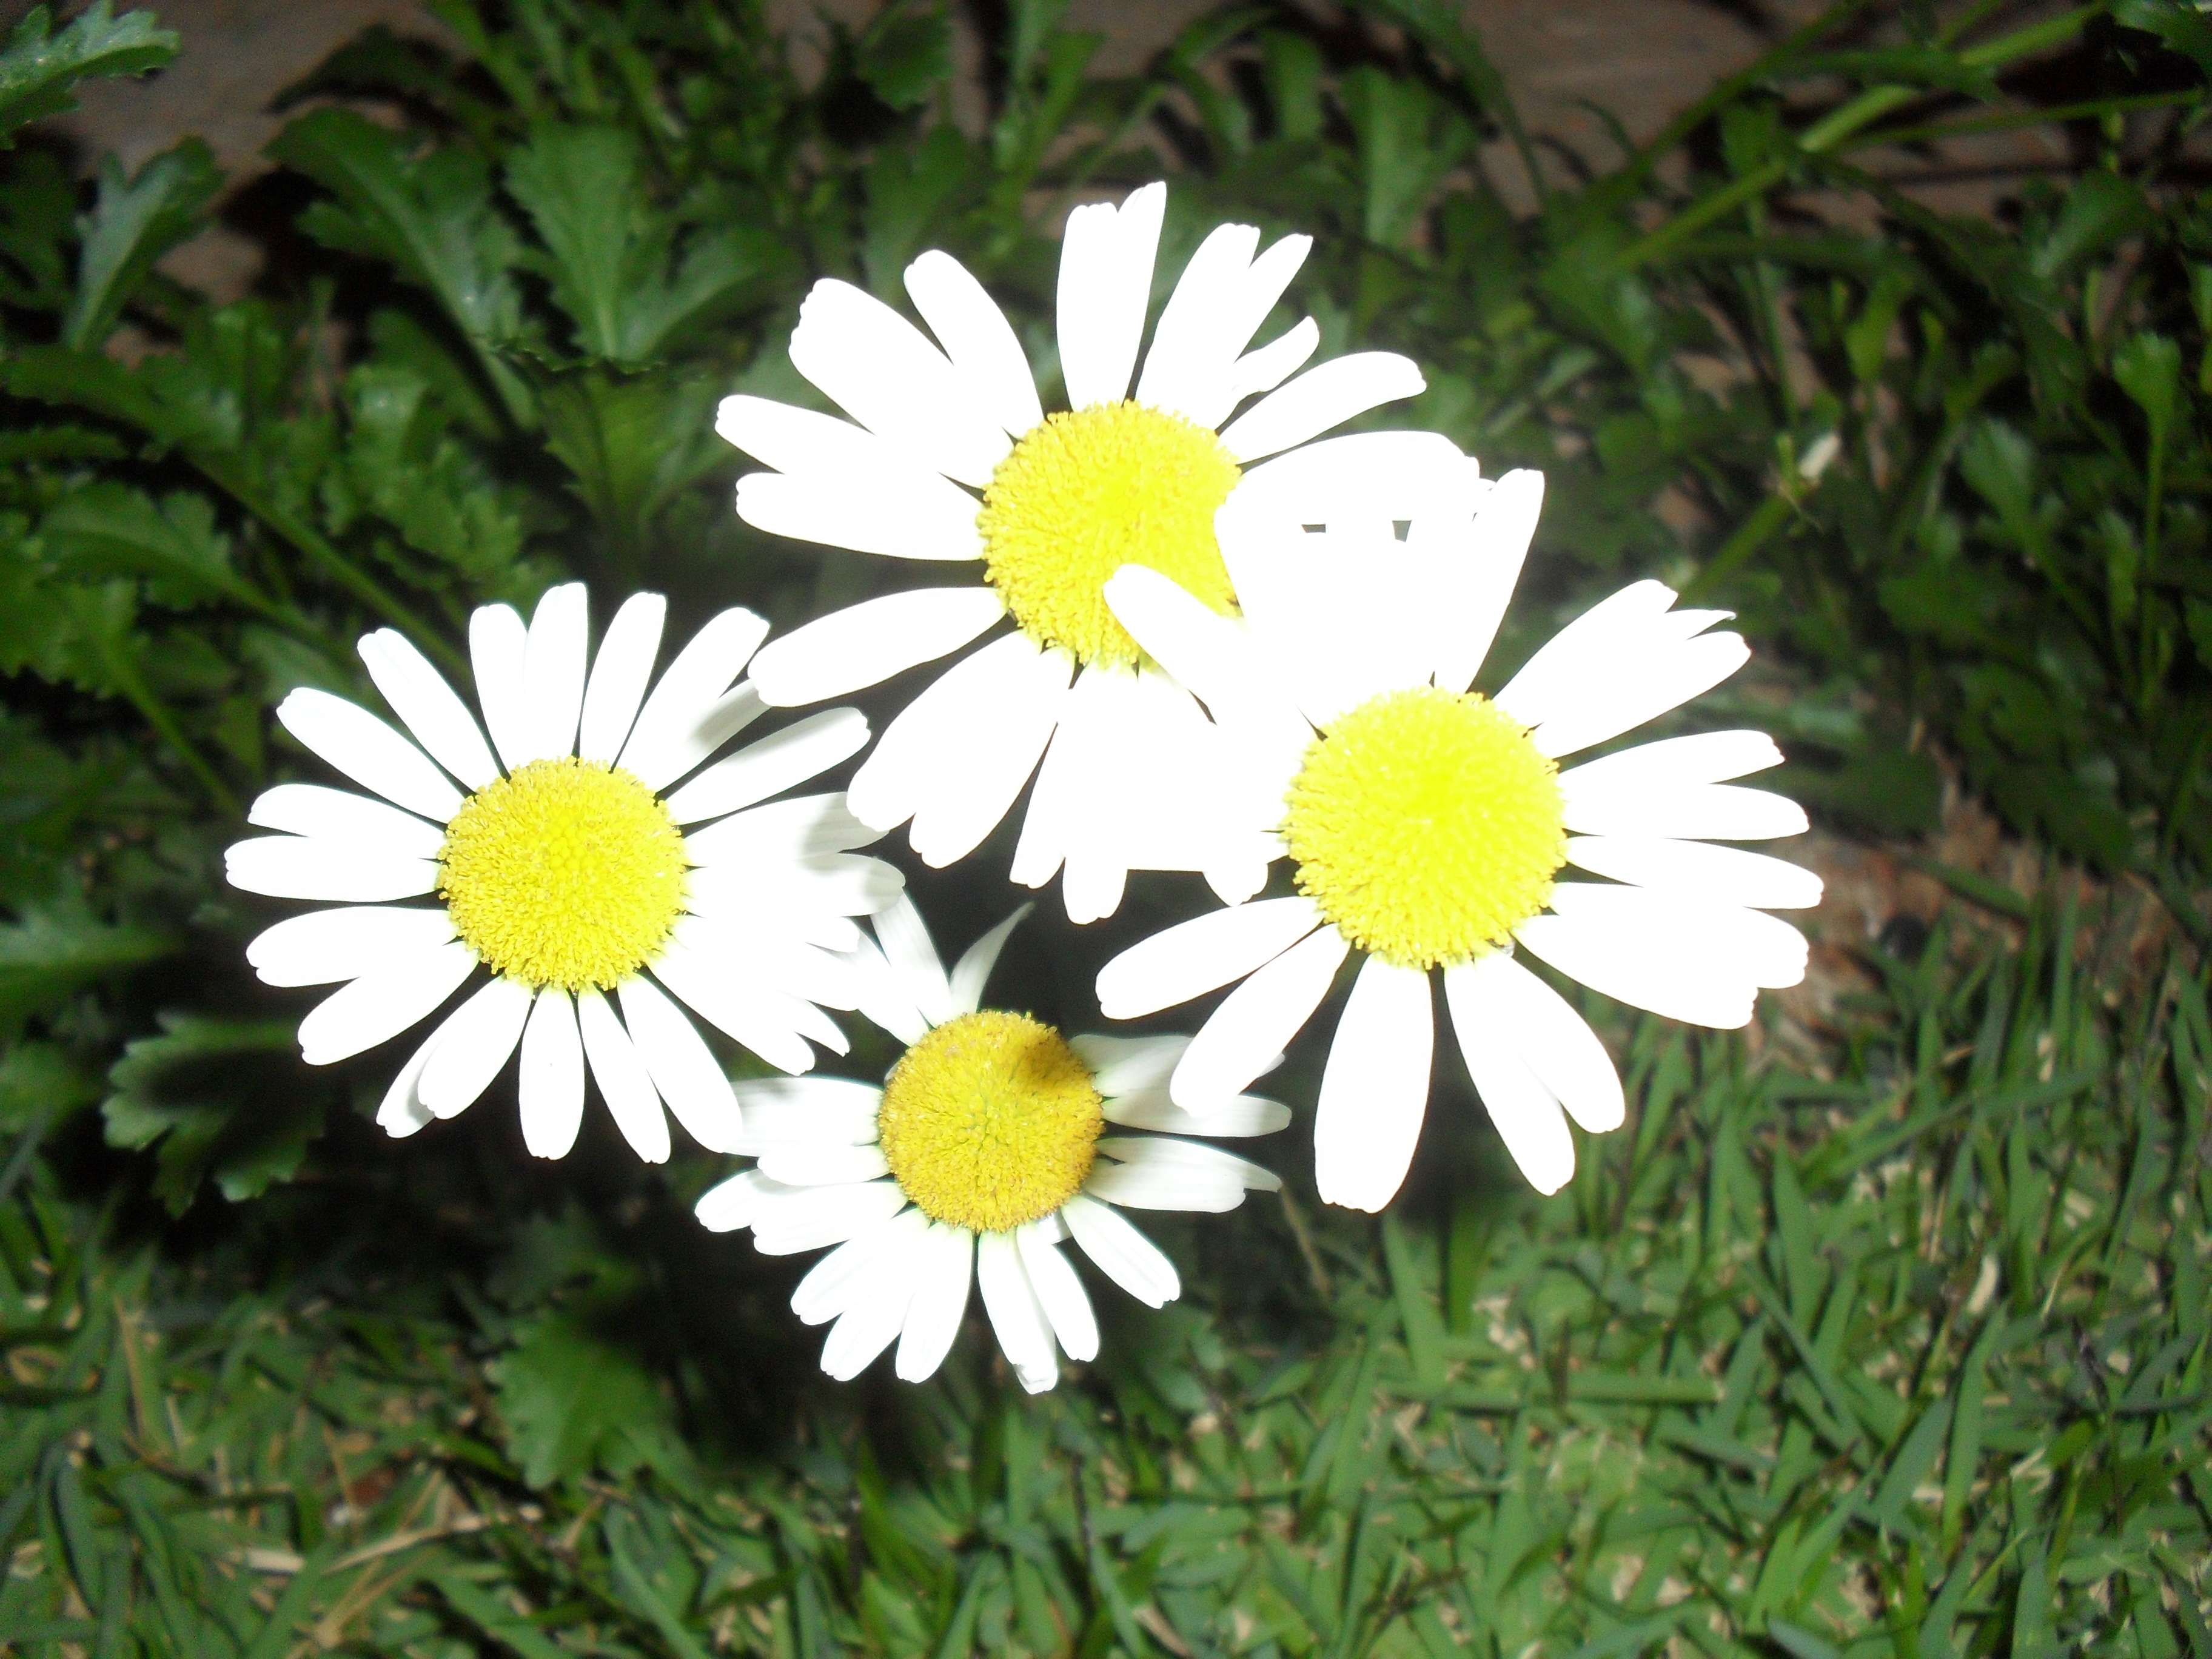 Filedaisy flower at nightg wikimedia commons filedaisy flower at nightg izmirmasajfo Gallery